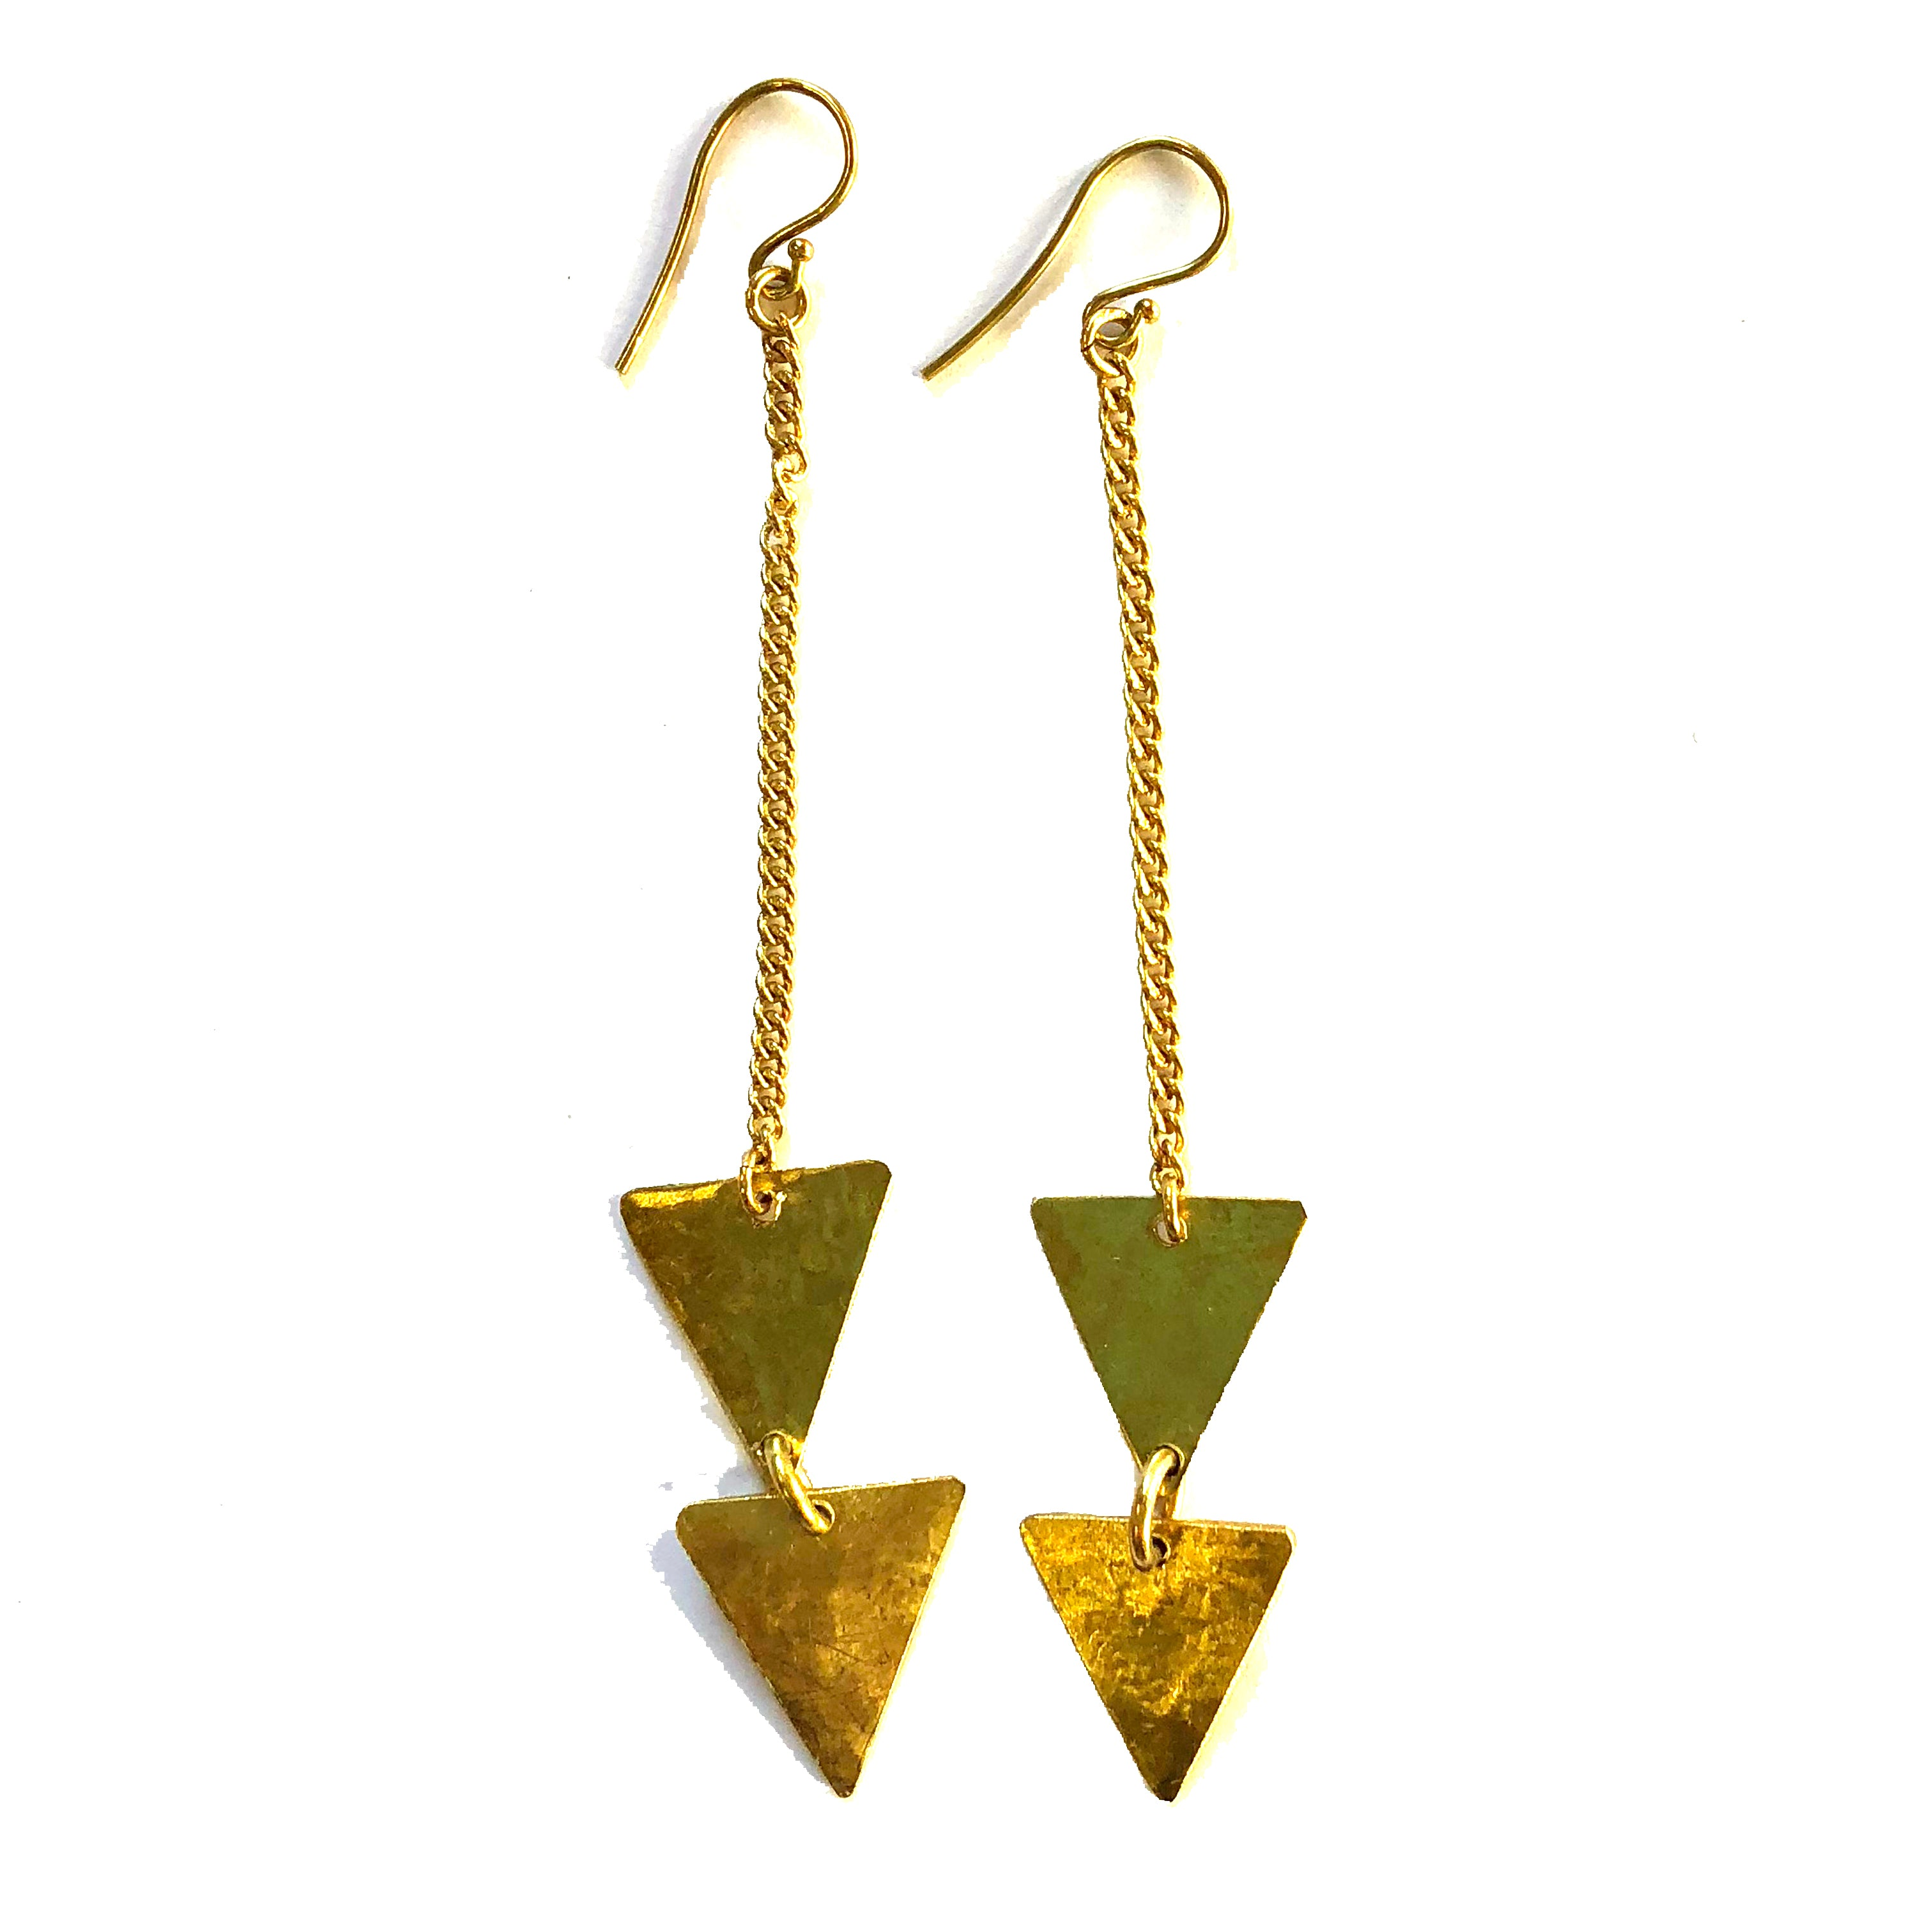 Fair trade earrings ethically handmade by empowered artisans in East Africa.